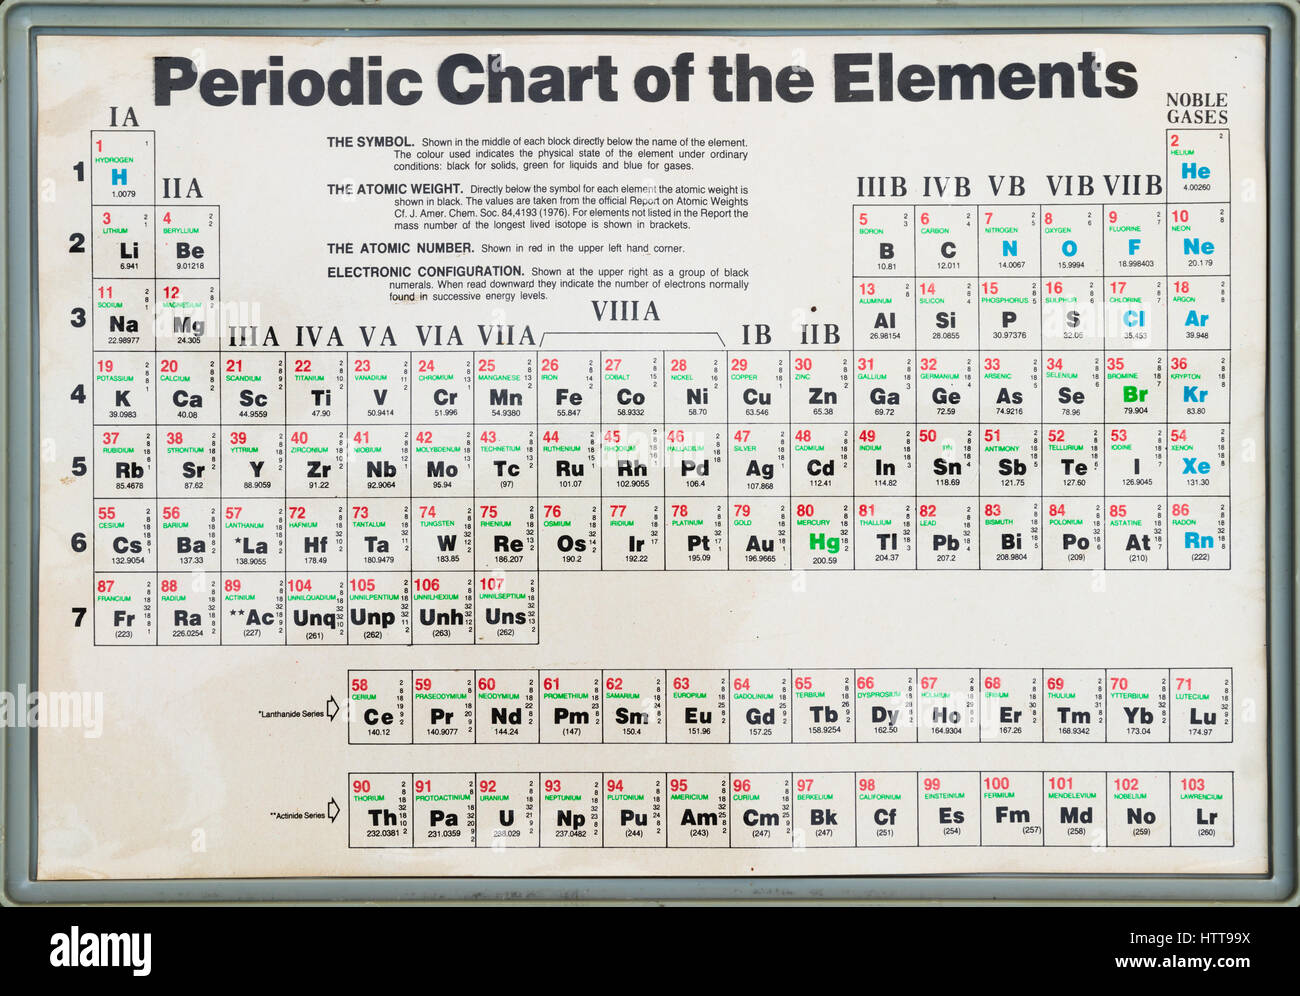 G elements of the periodic hydraulic pump wiki layout symbols period table elements chemistry science symbols stock photo old periodic table of elements showing the symbol urtaz Choice Image